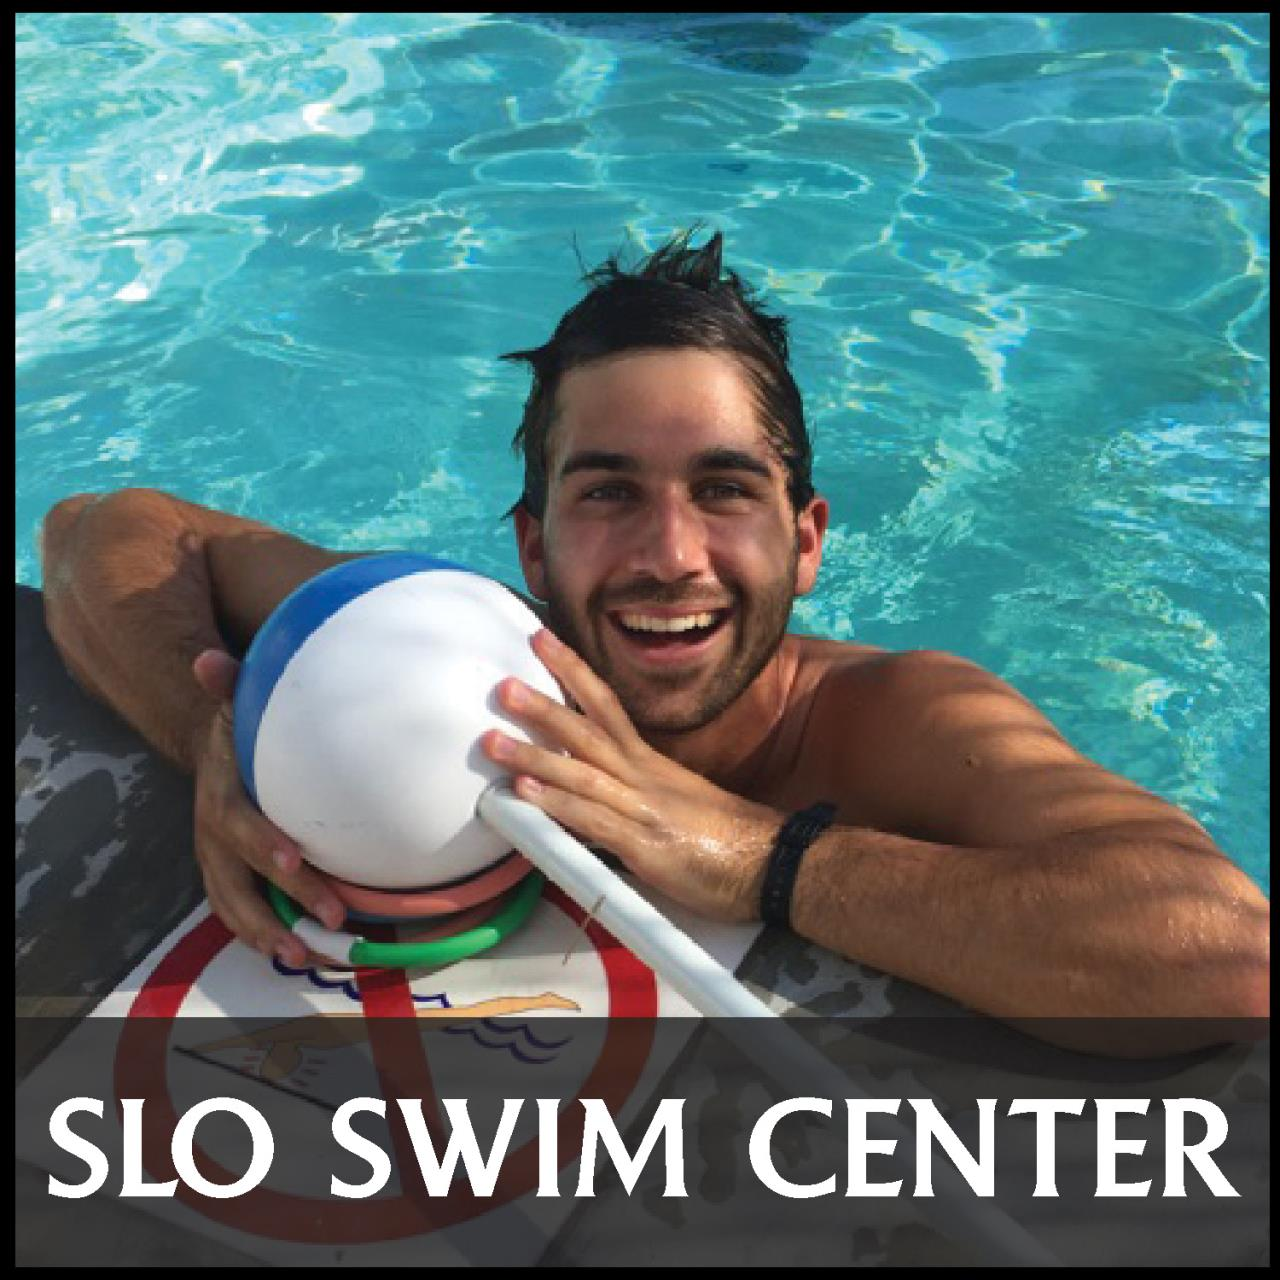 slo swim center